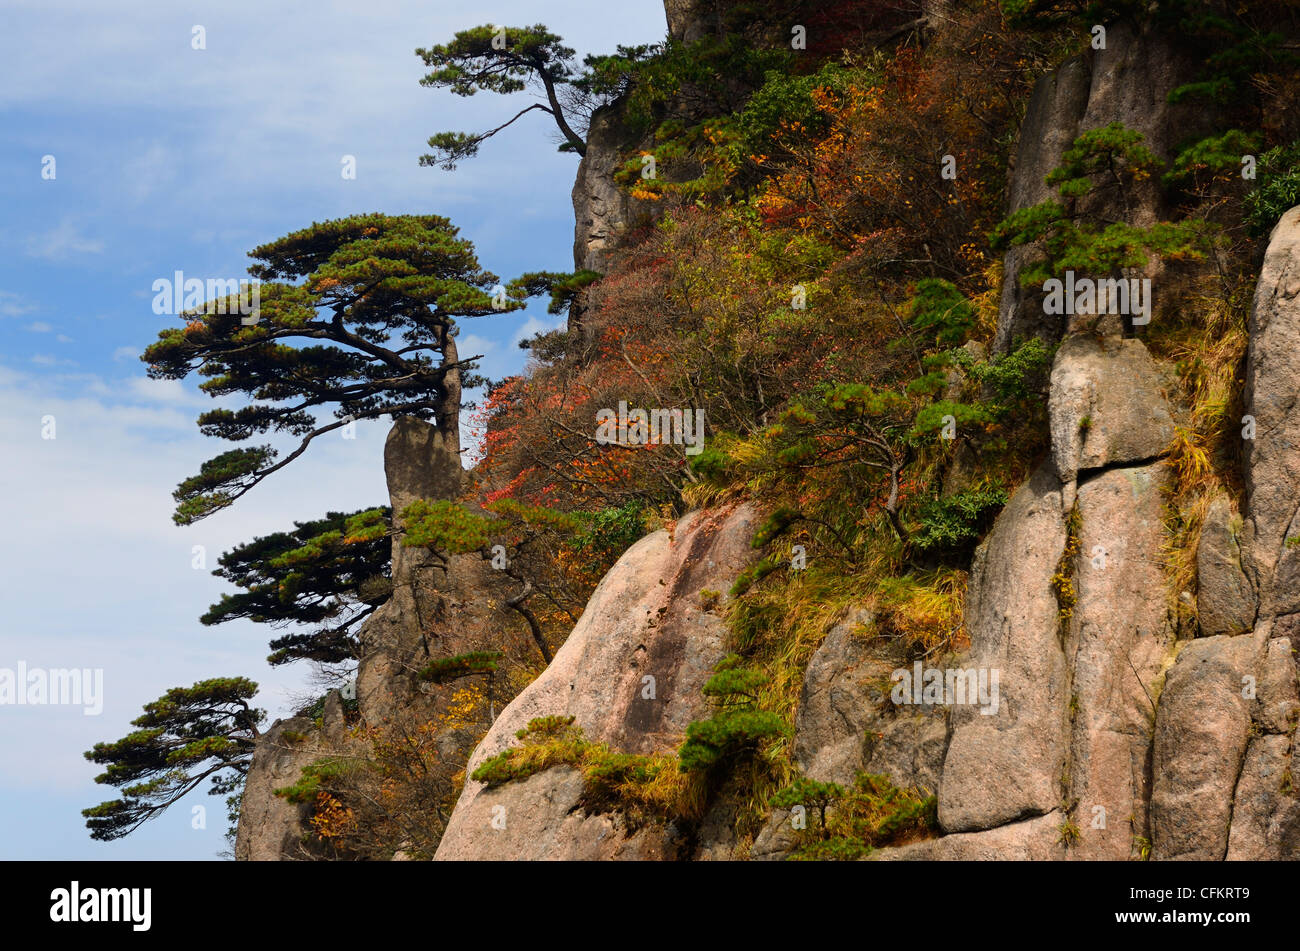 Pines on cliff of Beginning to Believe Peak with Fall foliage Mount Huangshan Yellow Mountain Peoples Republic of - Stock Image